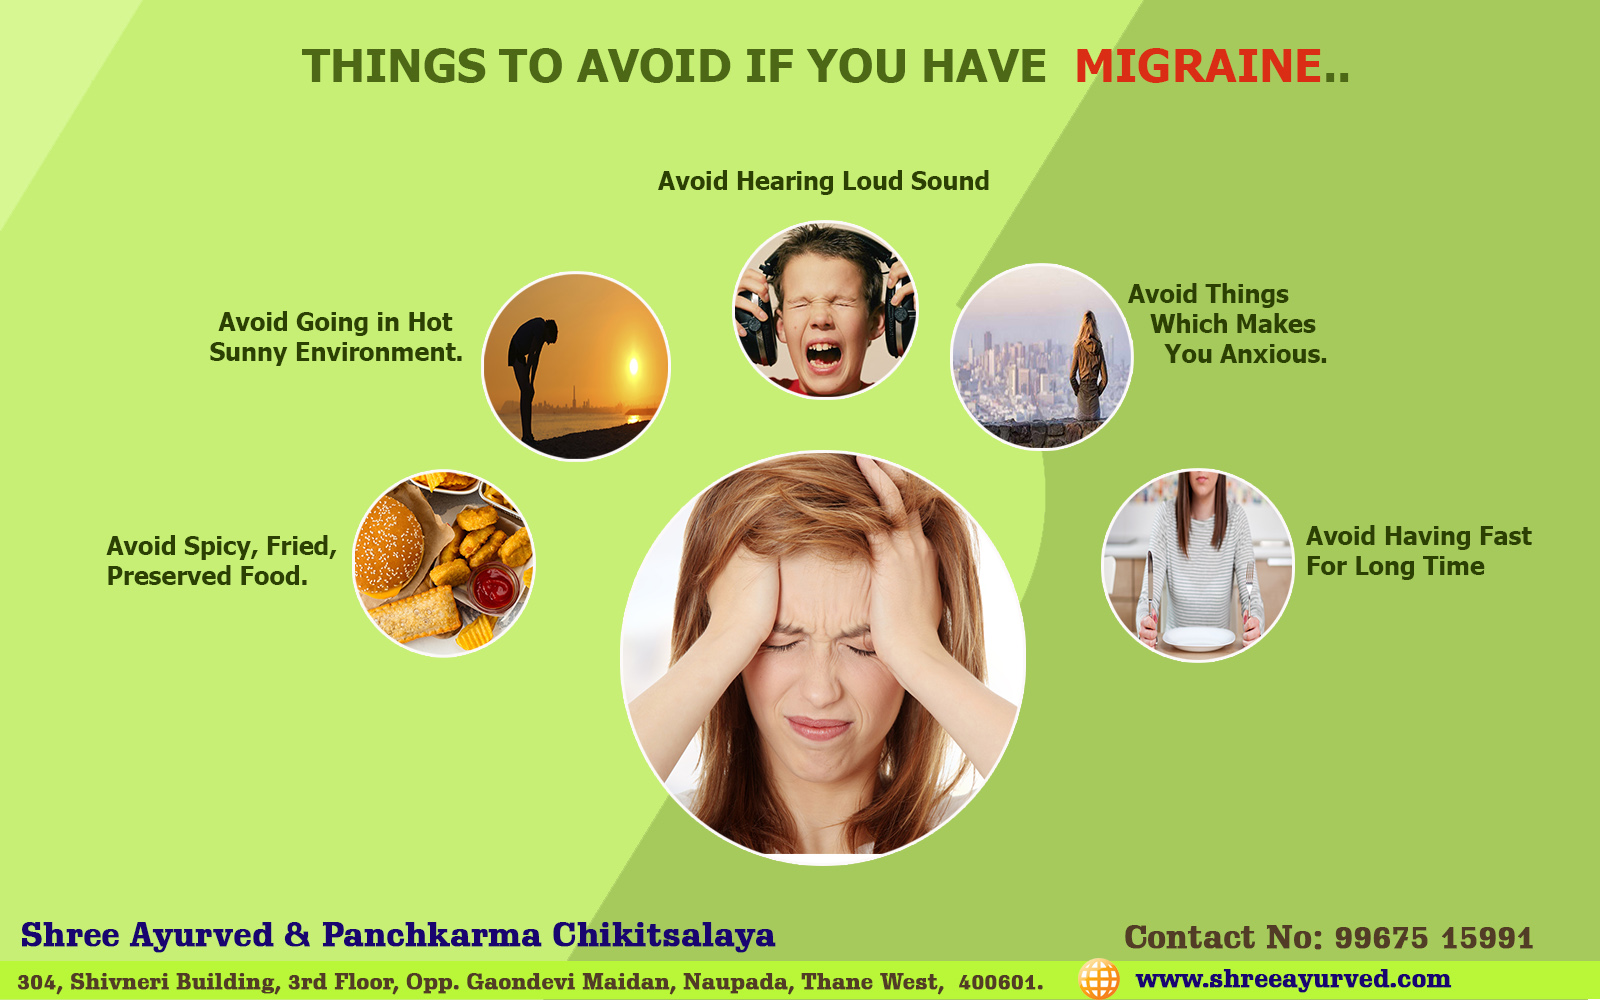 How to Avoid Migraine